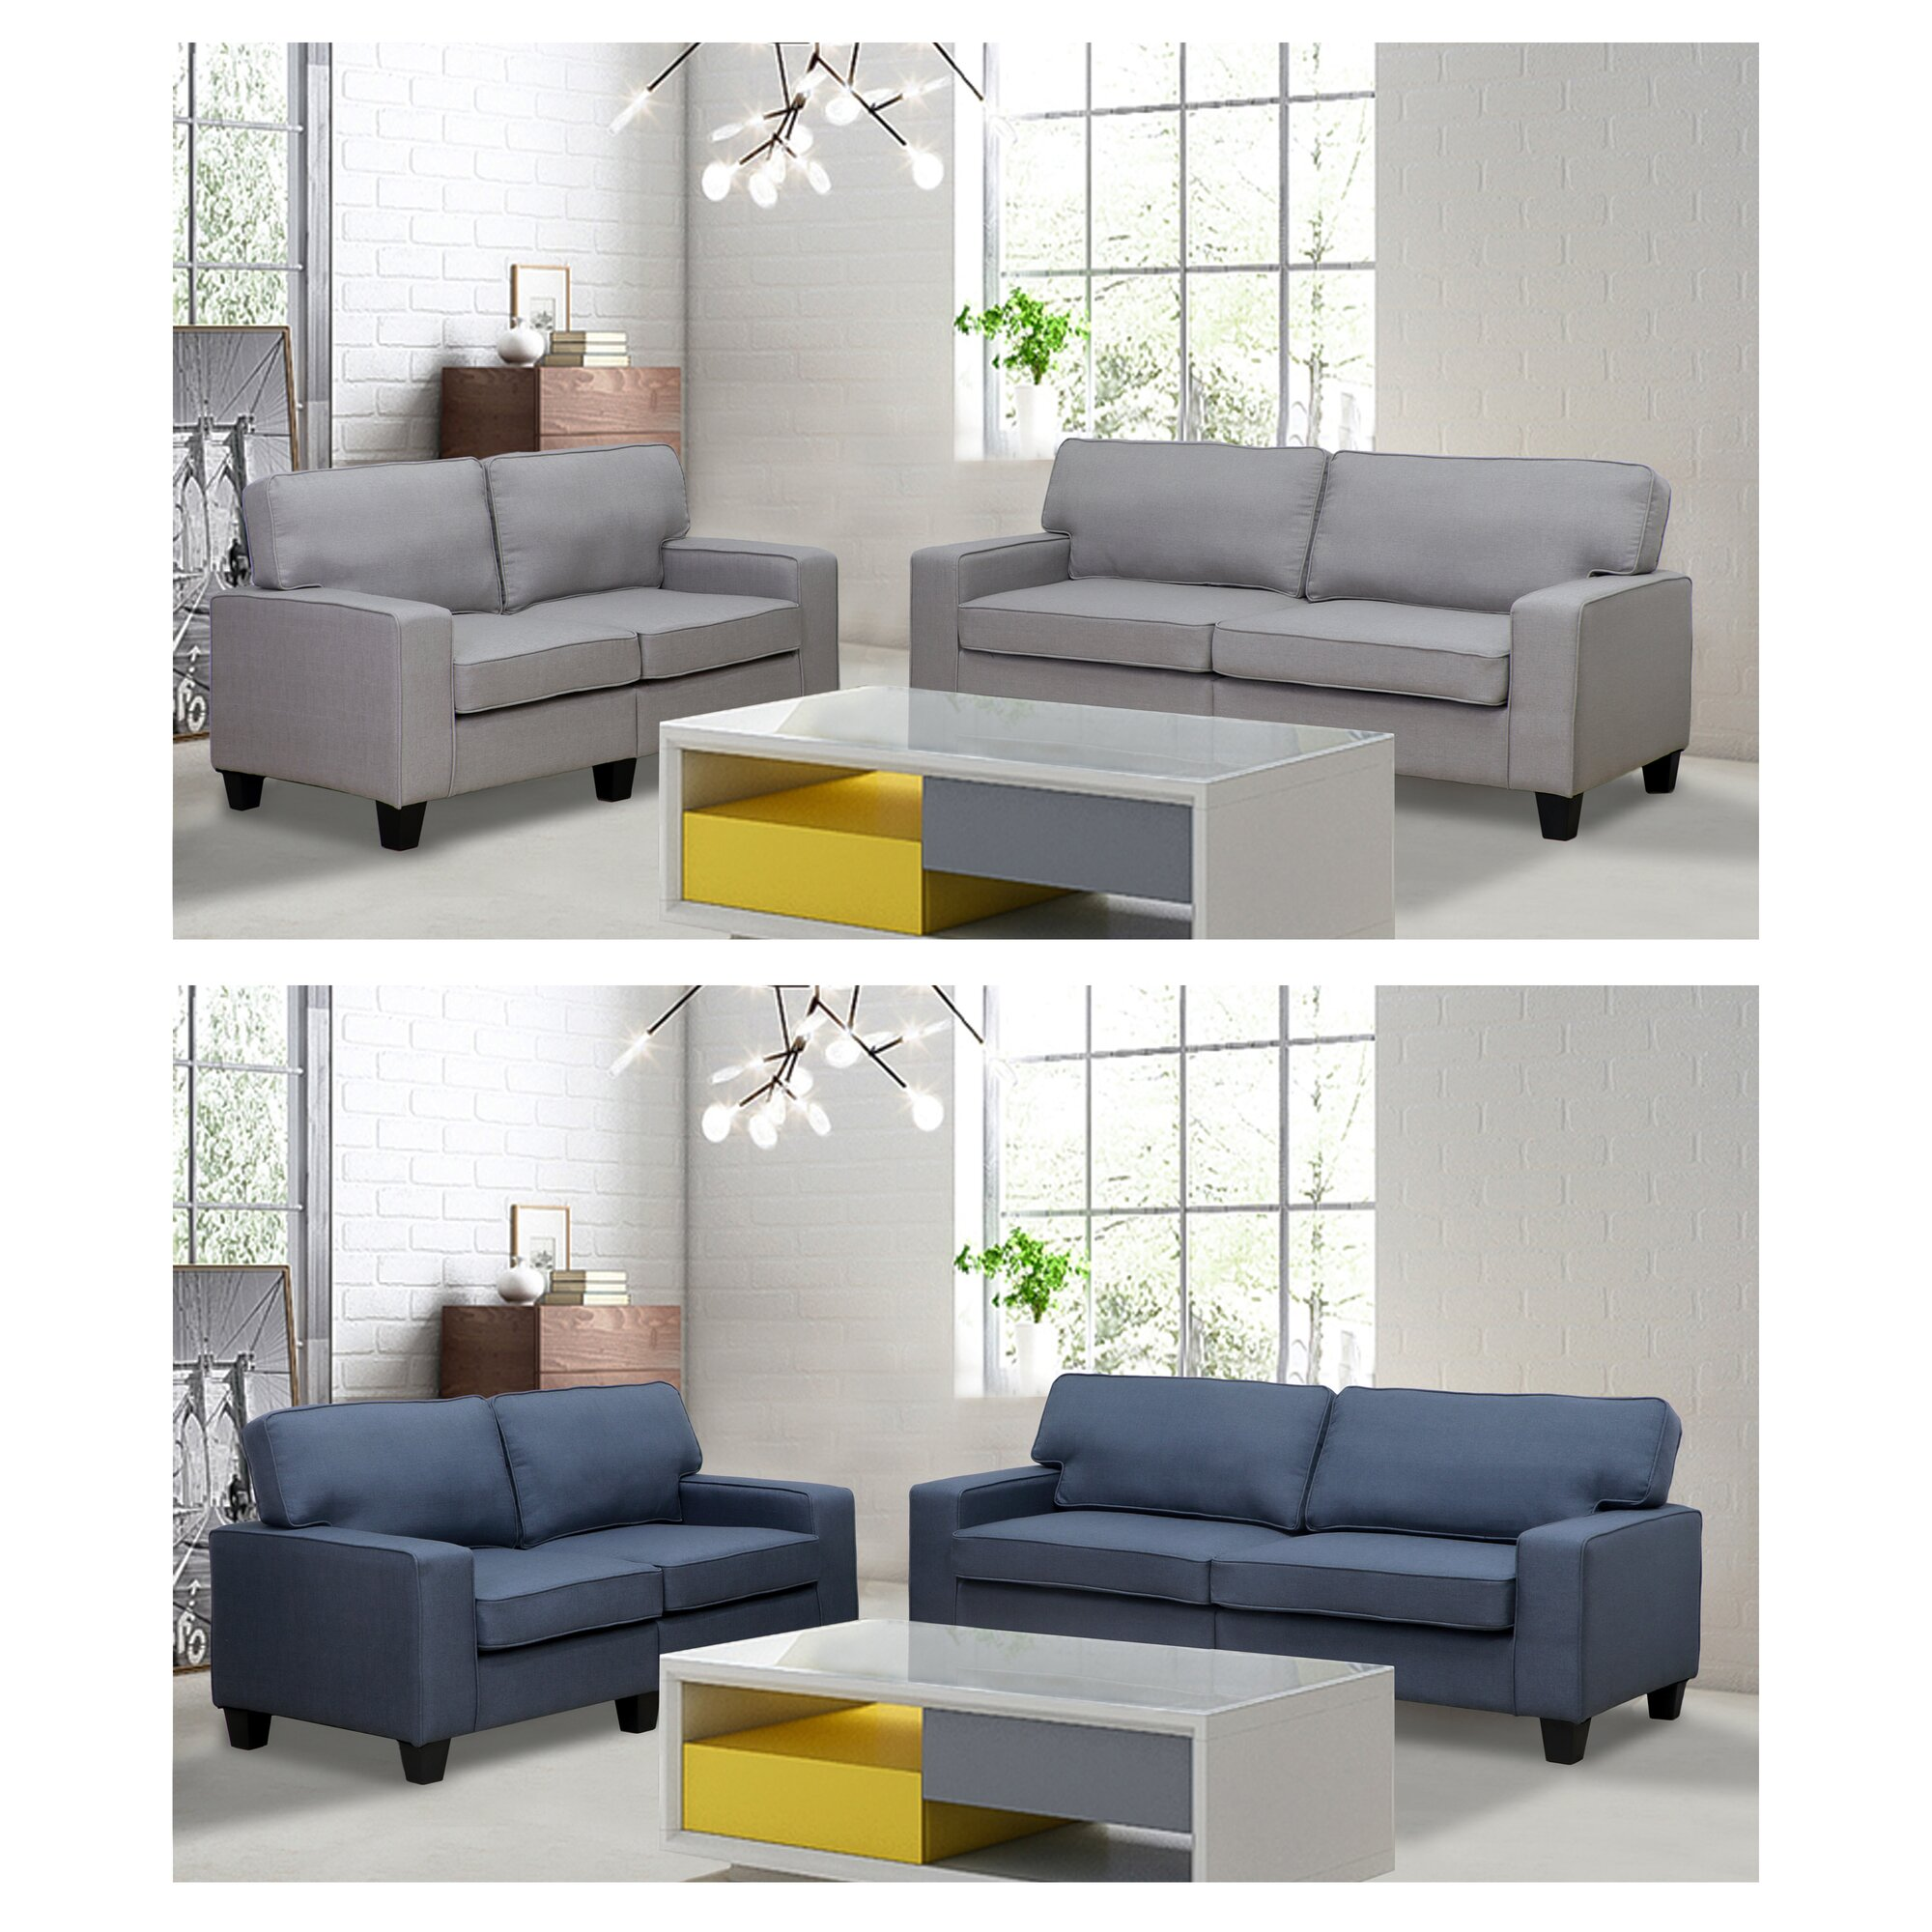 varick gallery bittle modern 2 piece living room sofa and loveseat set reviews. Black Bedroom Furniture Sets. Home Design Ideas